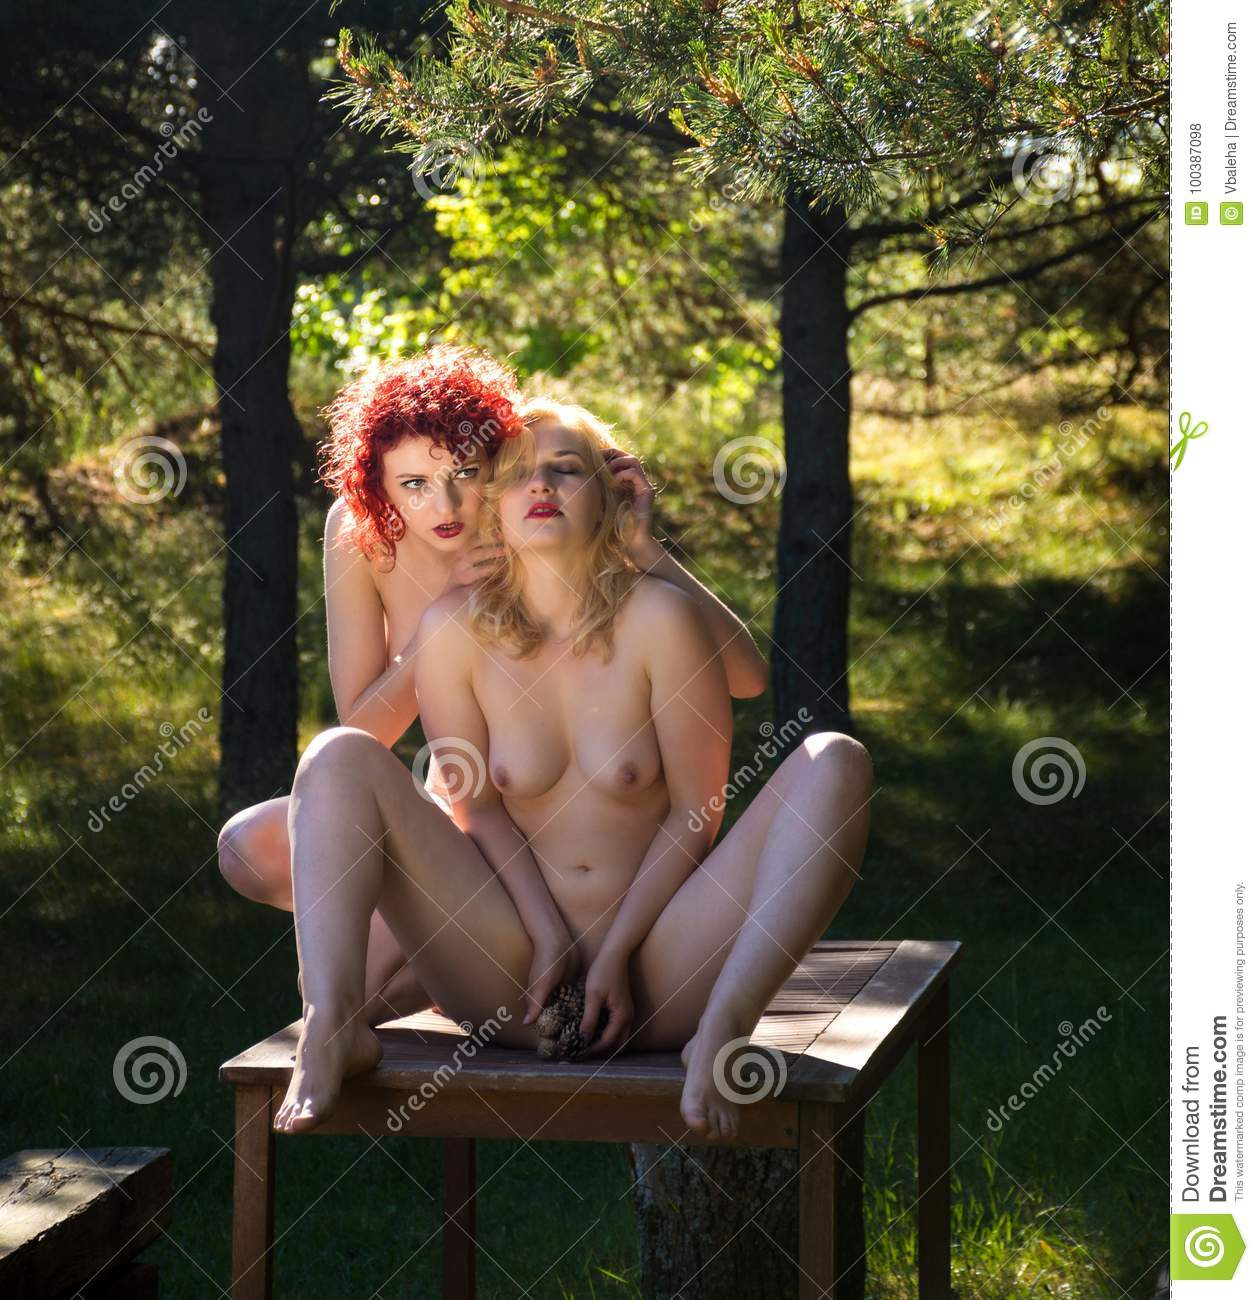 two young nude women stock photo. image of female, girl - 100387098